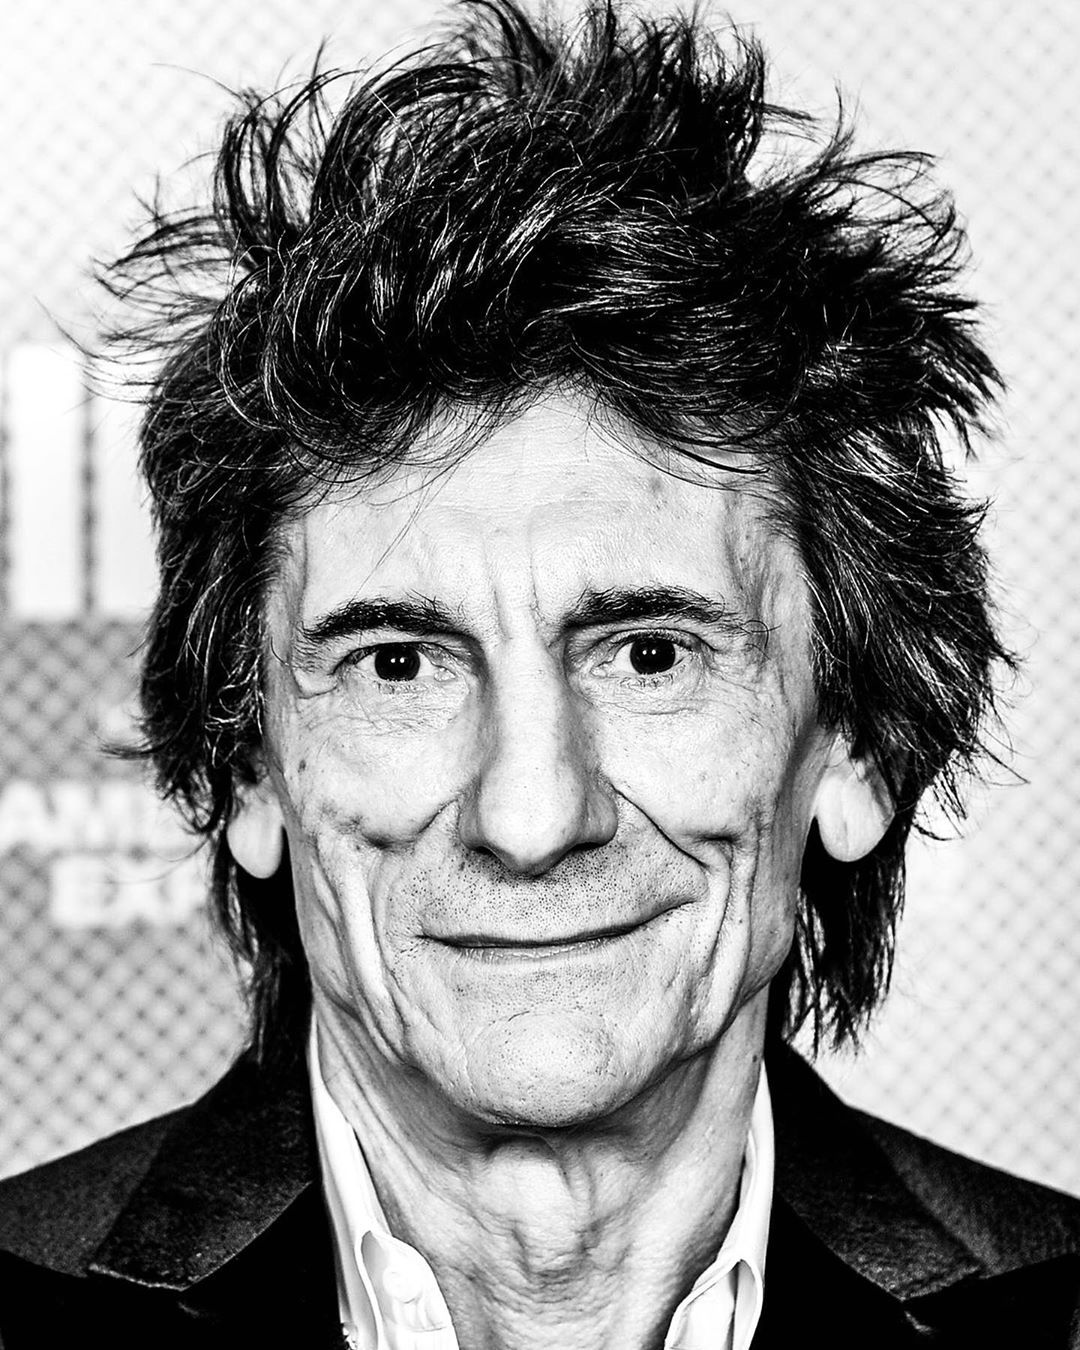 Pin on Ronniewood